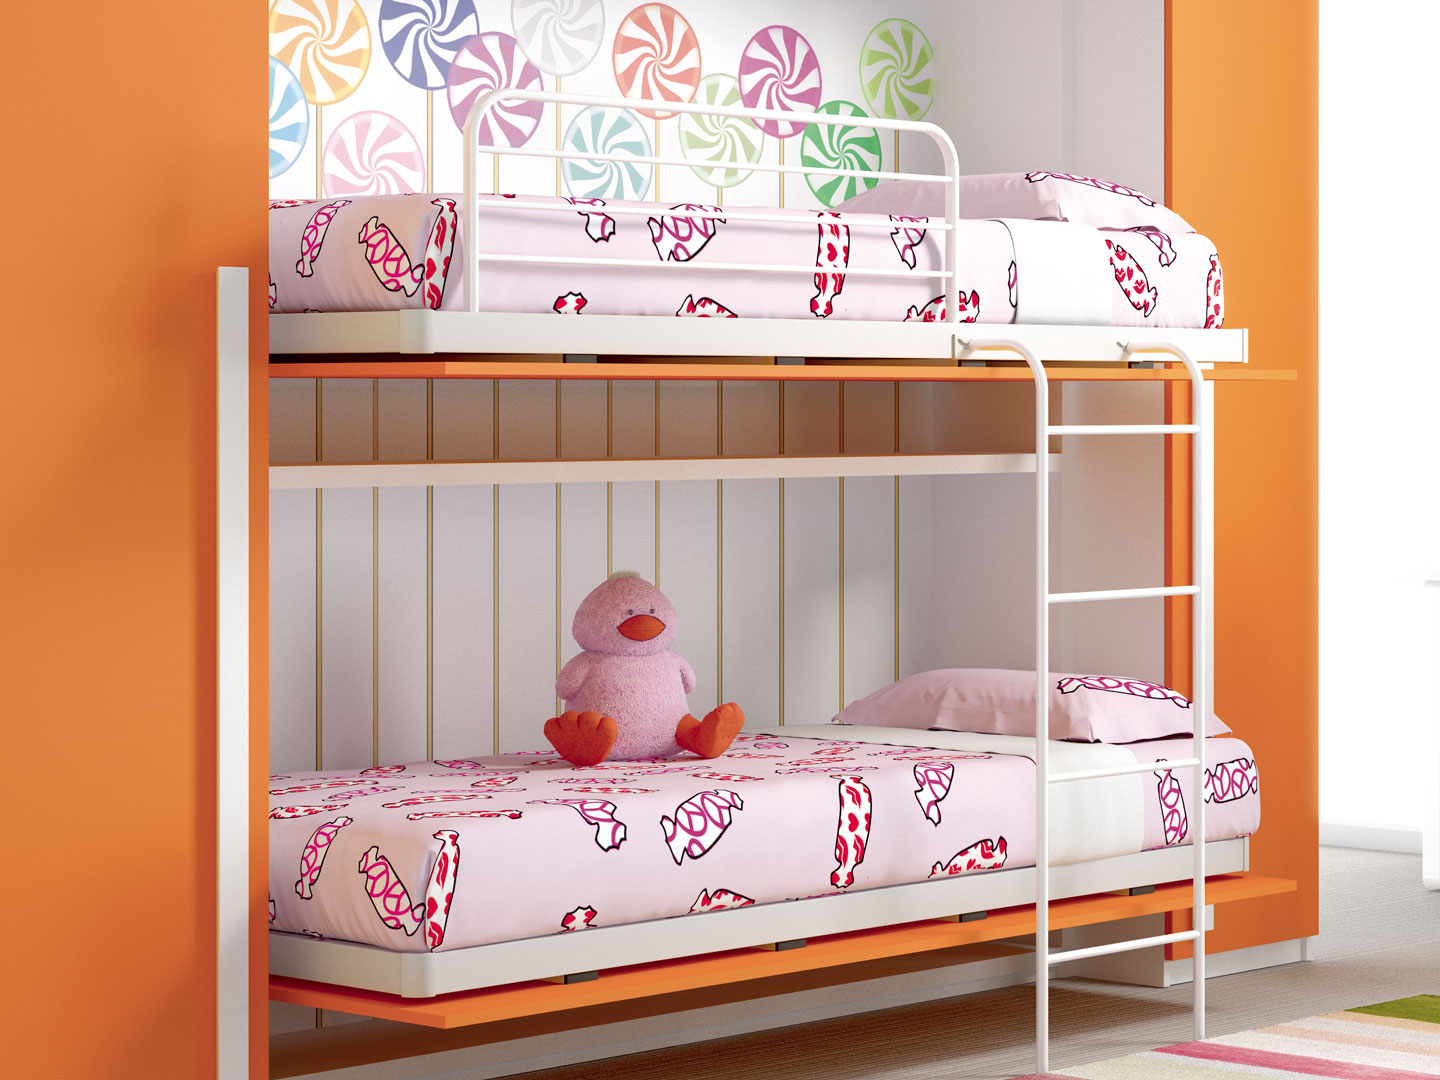 Children 39 s rooms made in italy ima mobili composition 11 newformsdesign children s rooms - Mobili made in italy ...